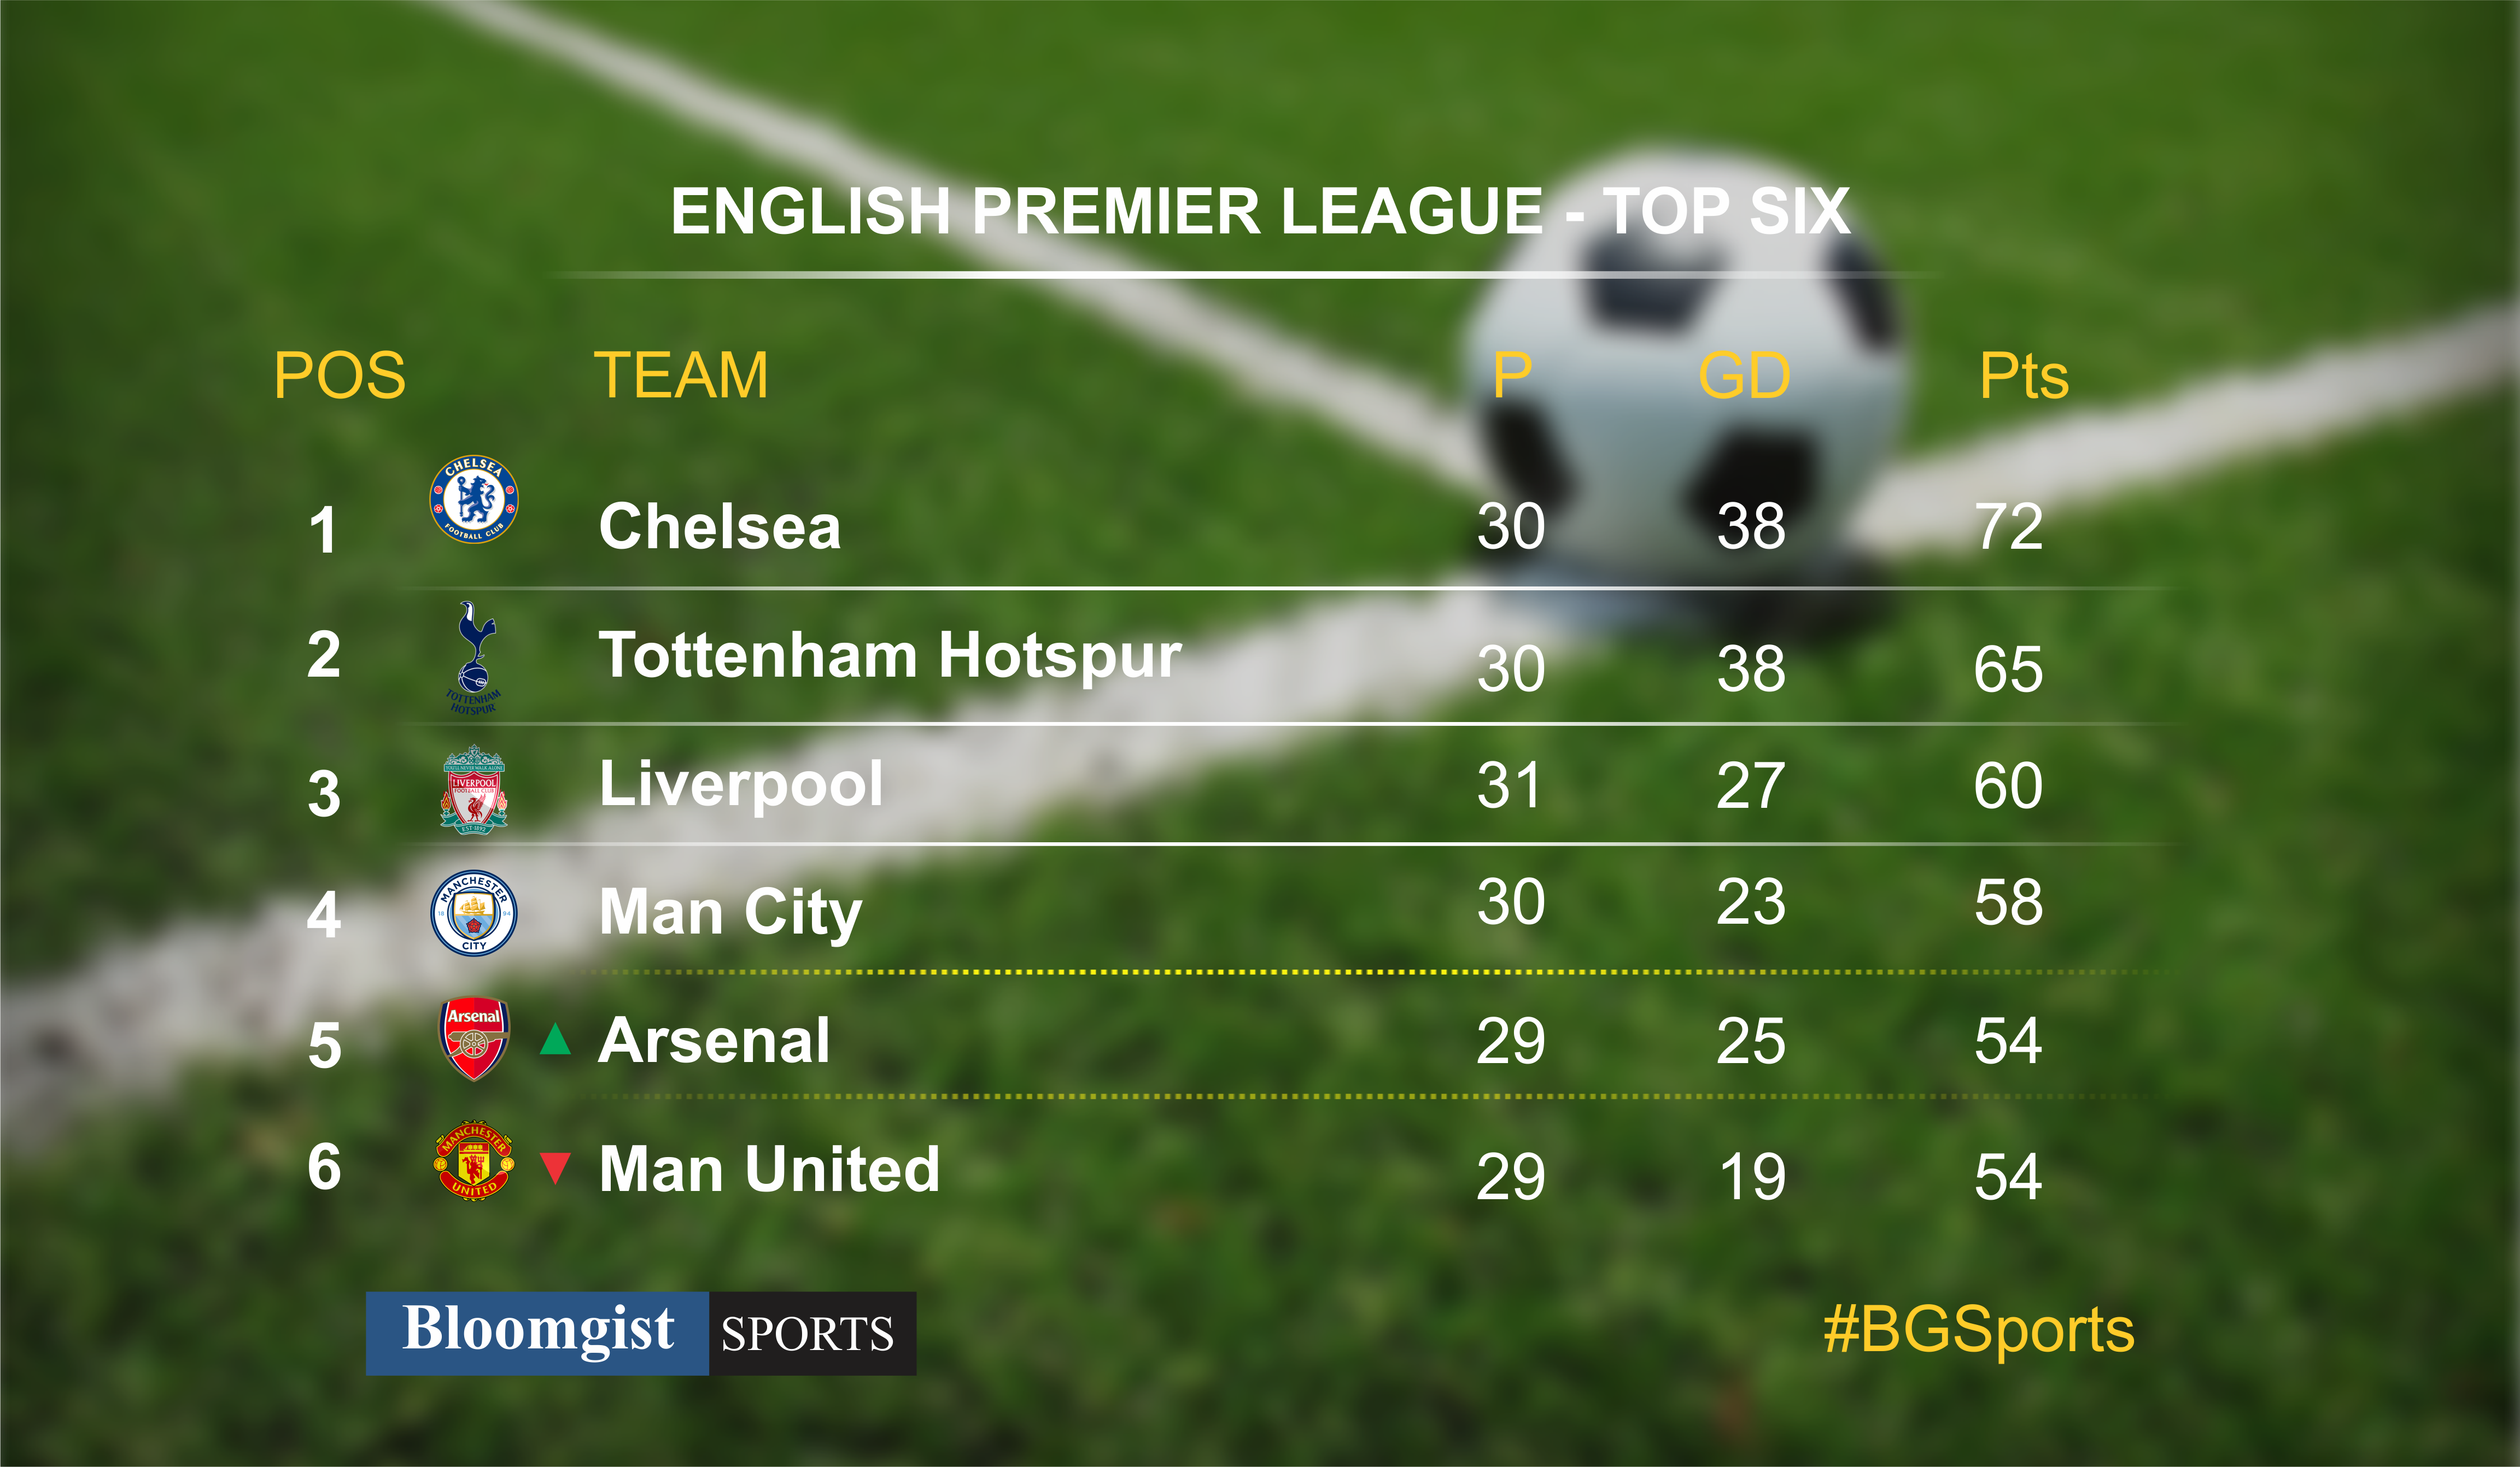 ENGLISH PREMIER LEAGUE - TOP SIX